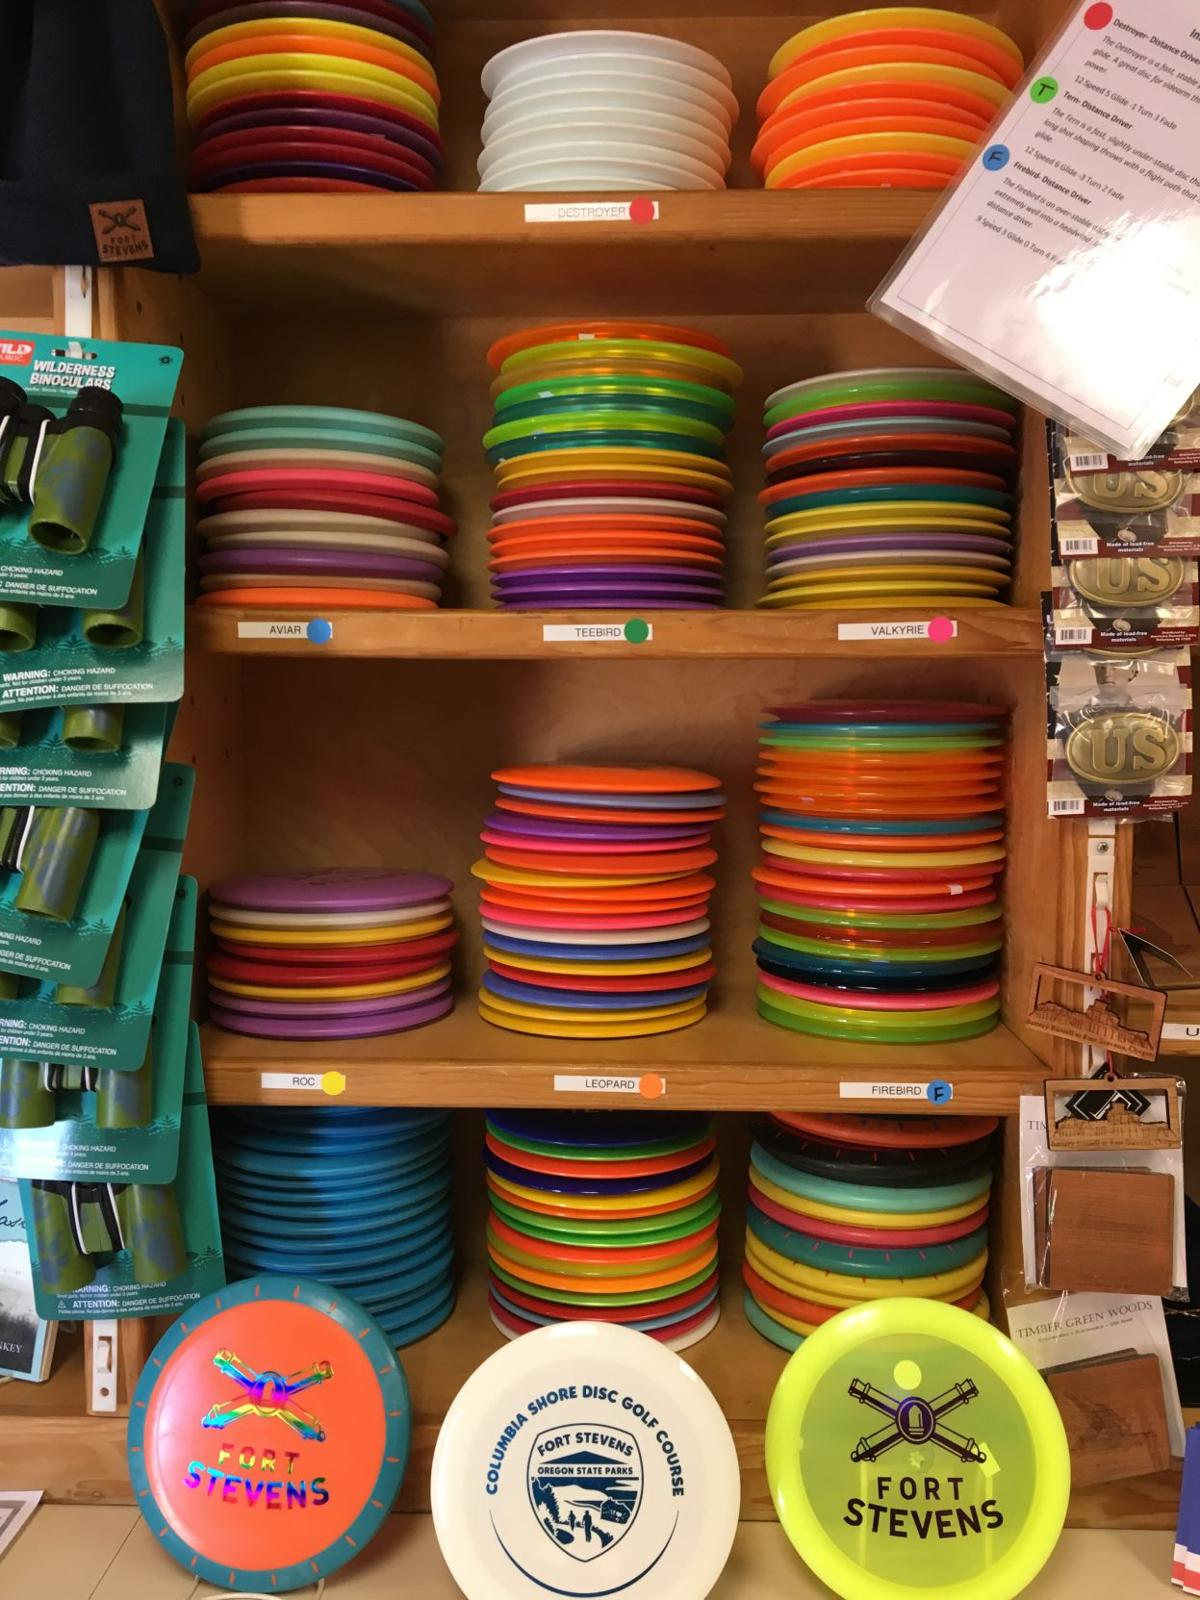 Discs for sale